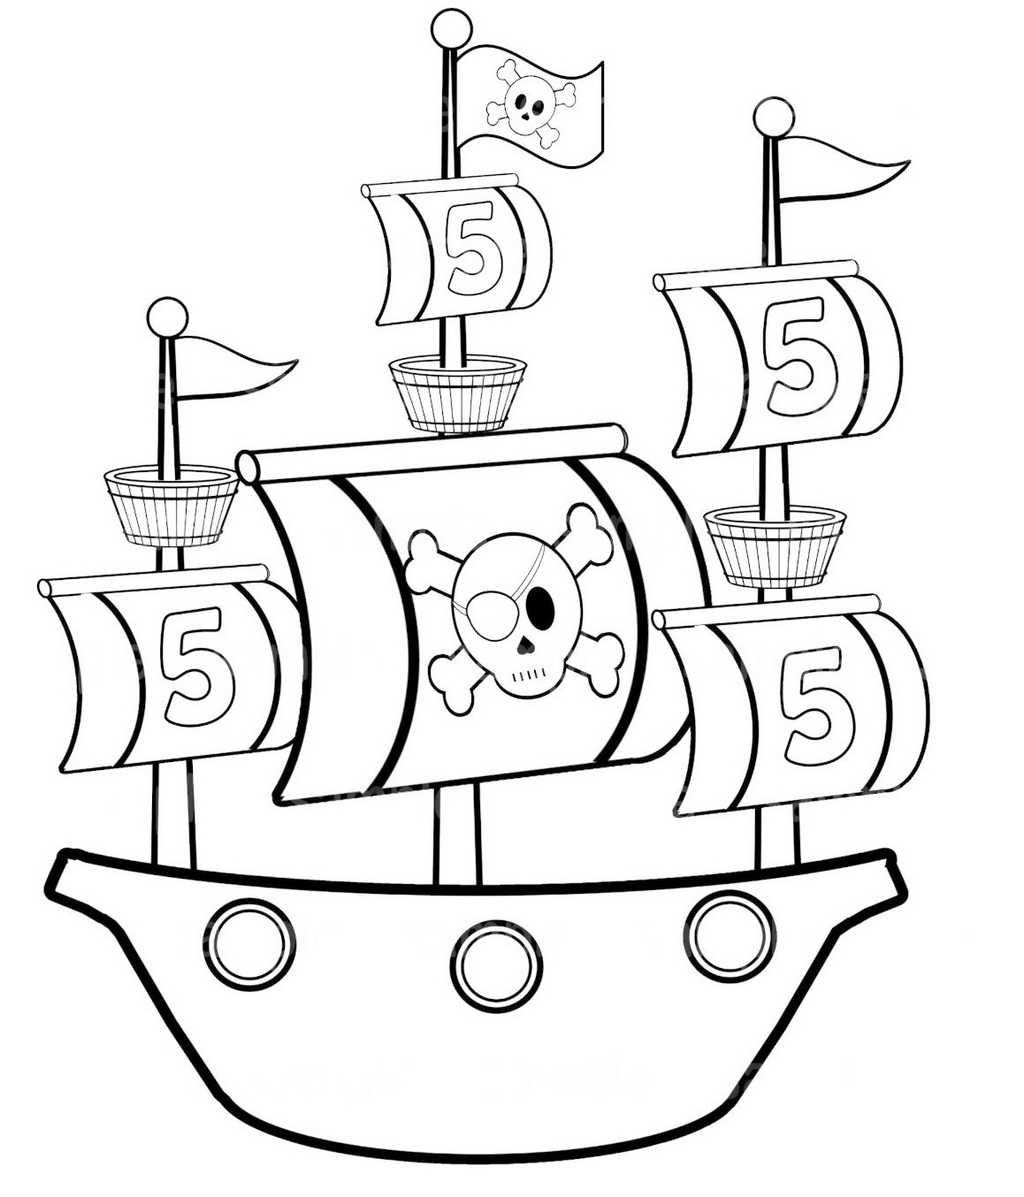 ship coloring pages simple pirate ship coloring pages for preschool coloring ship pages